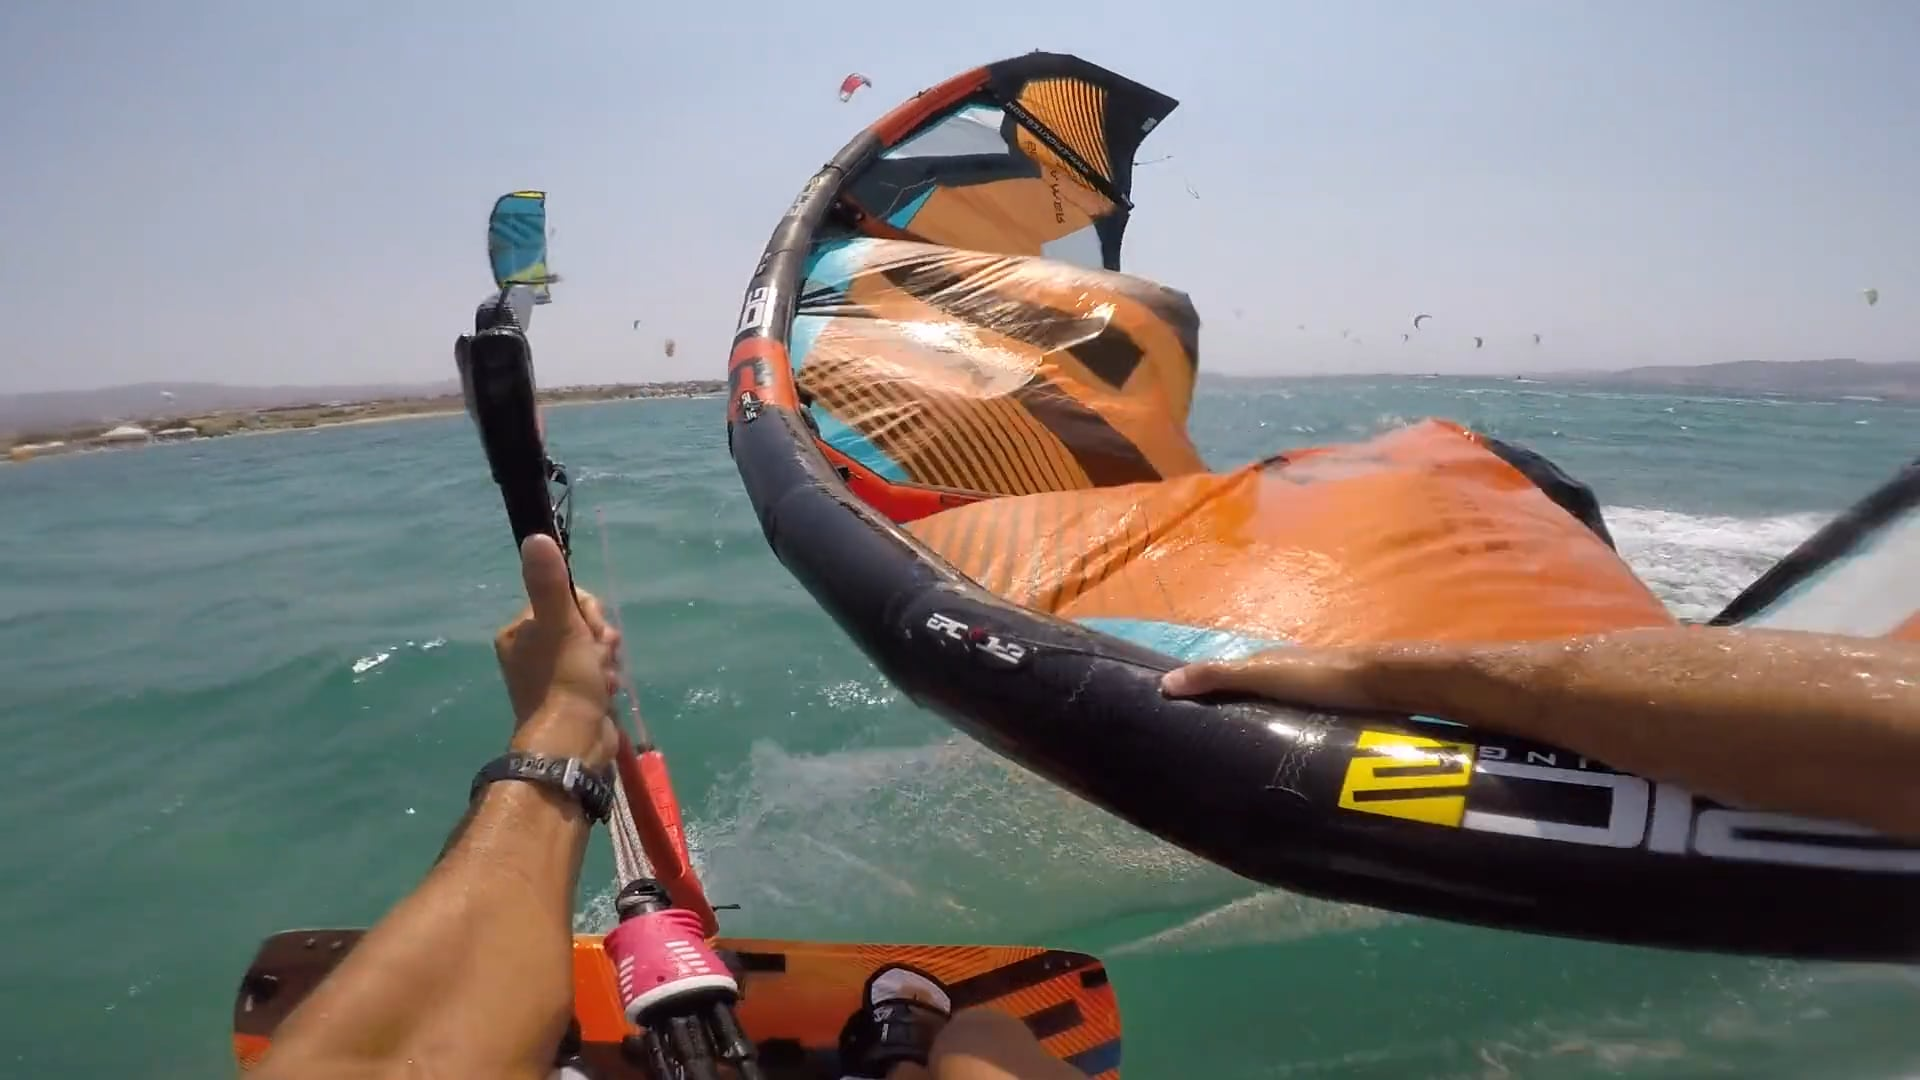 How to save someone's kite - with Epic Kites Kiteboarding